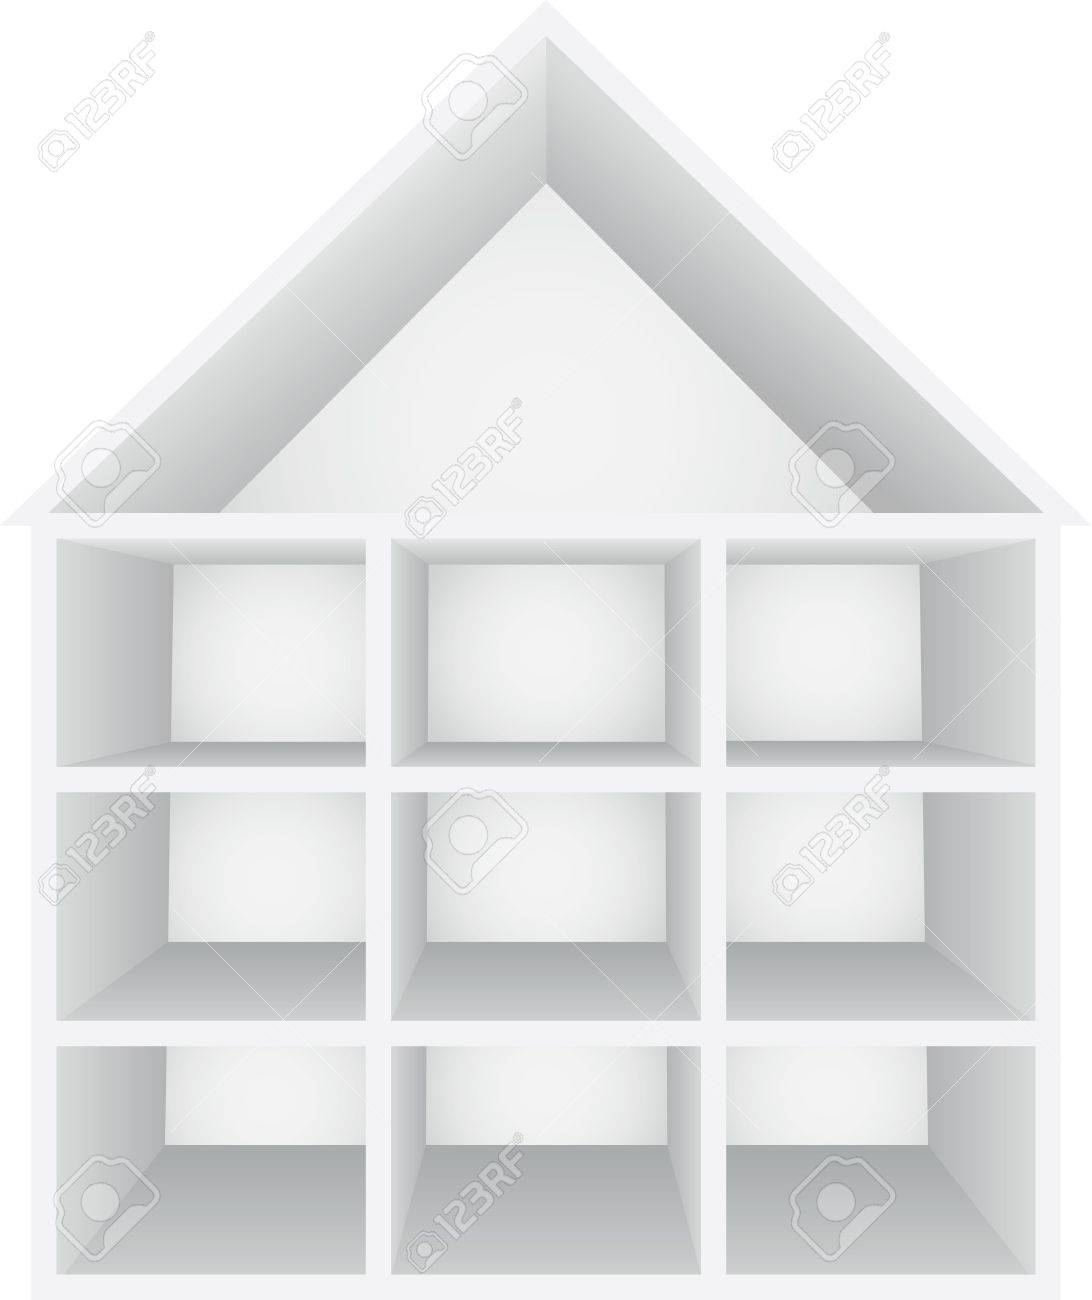 Perspective view of house Stock Vector - 13425167